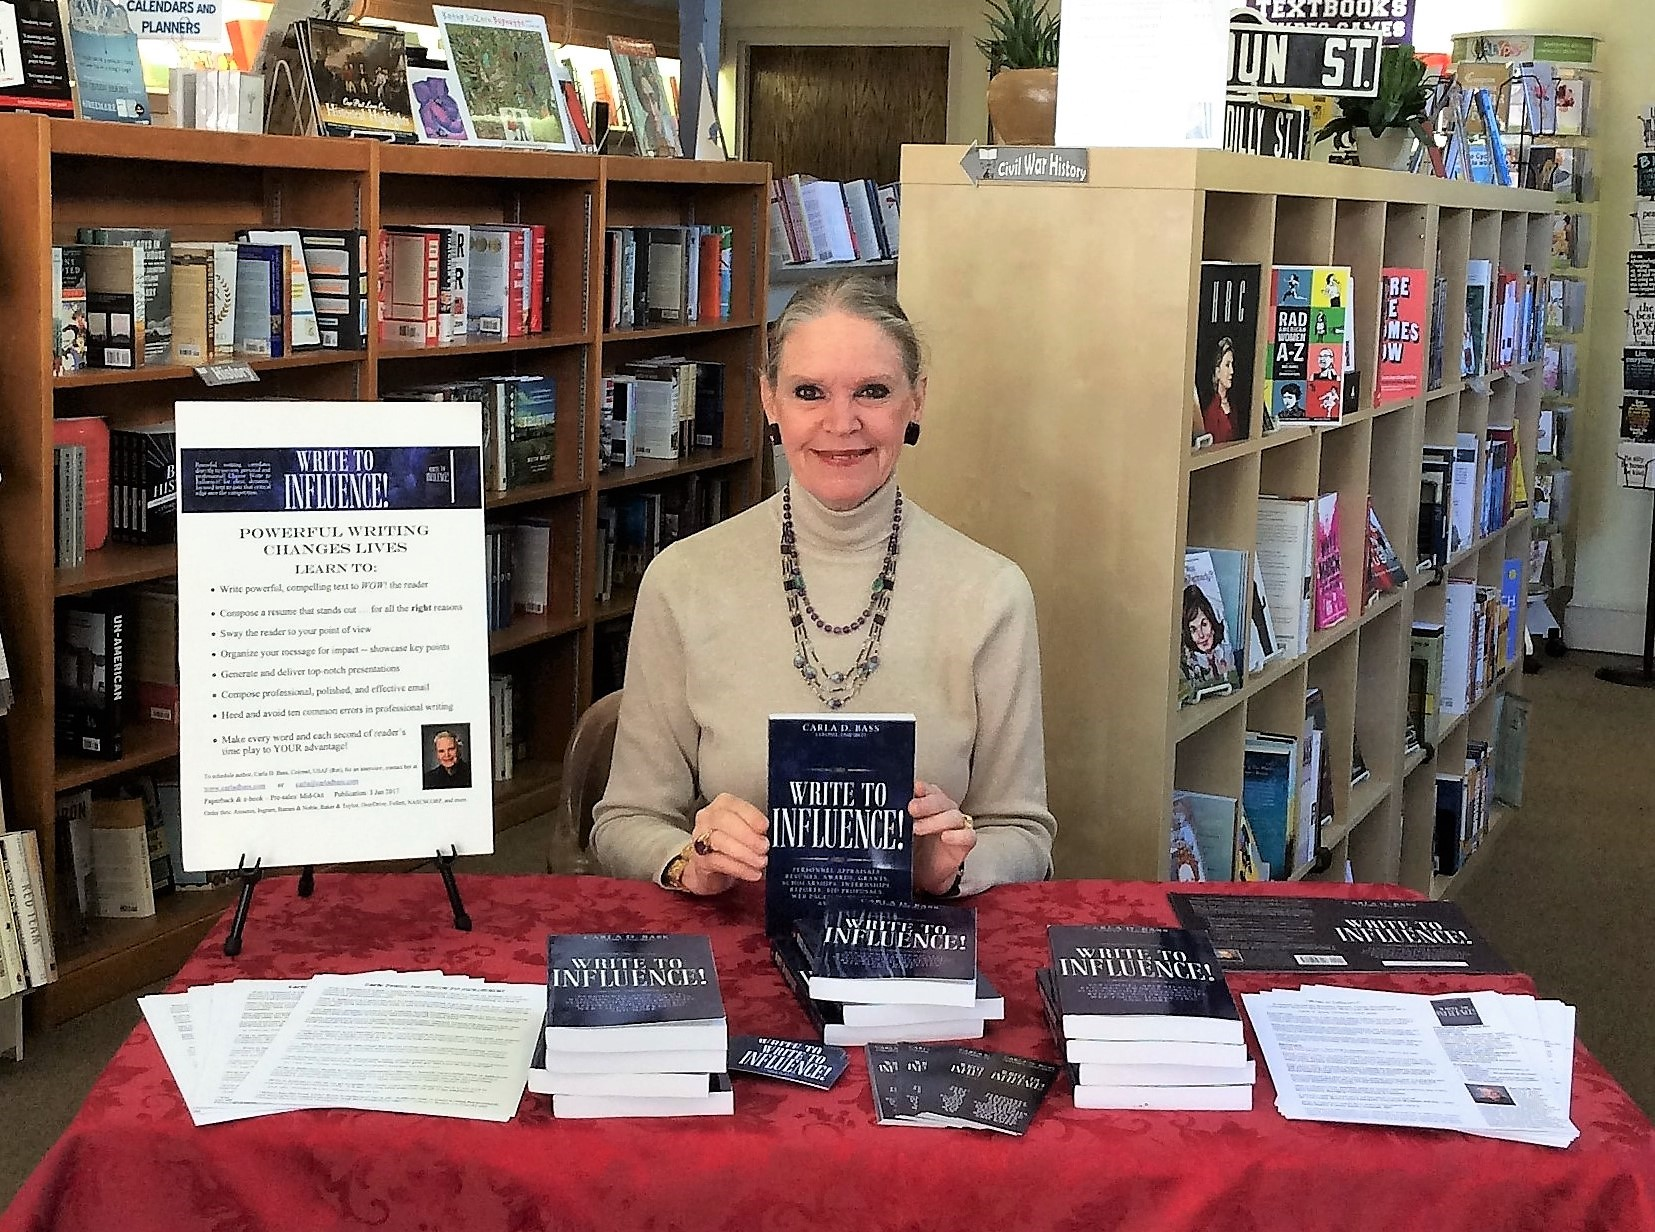 Carla D. Bass, author of award-winning book Write to Influence! signs books at a book store